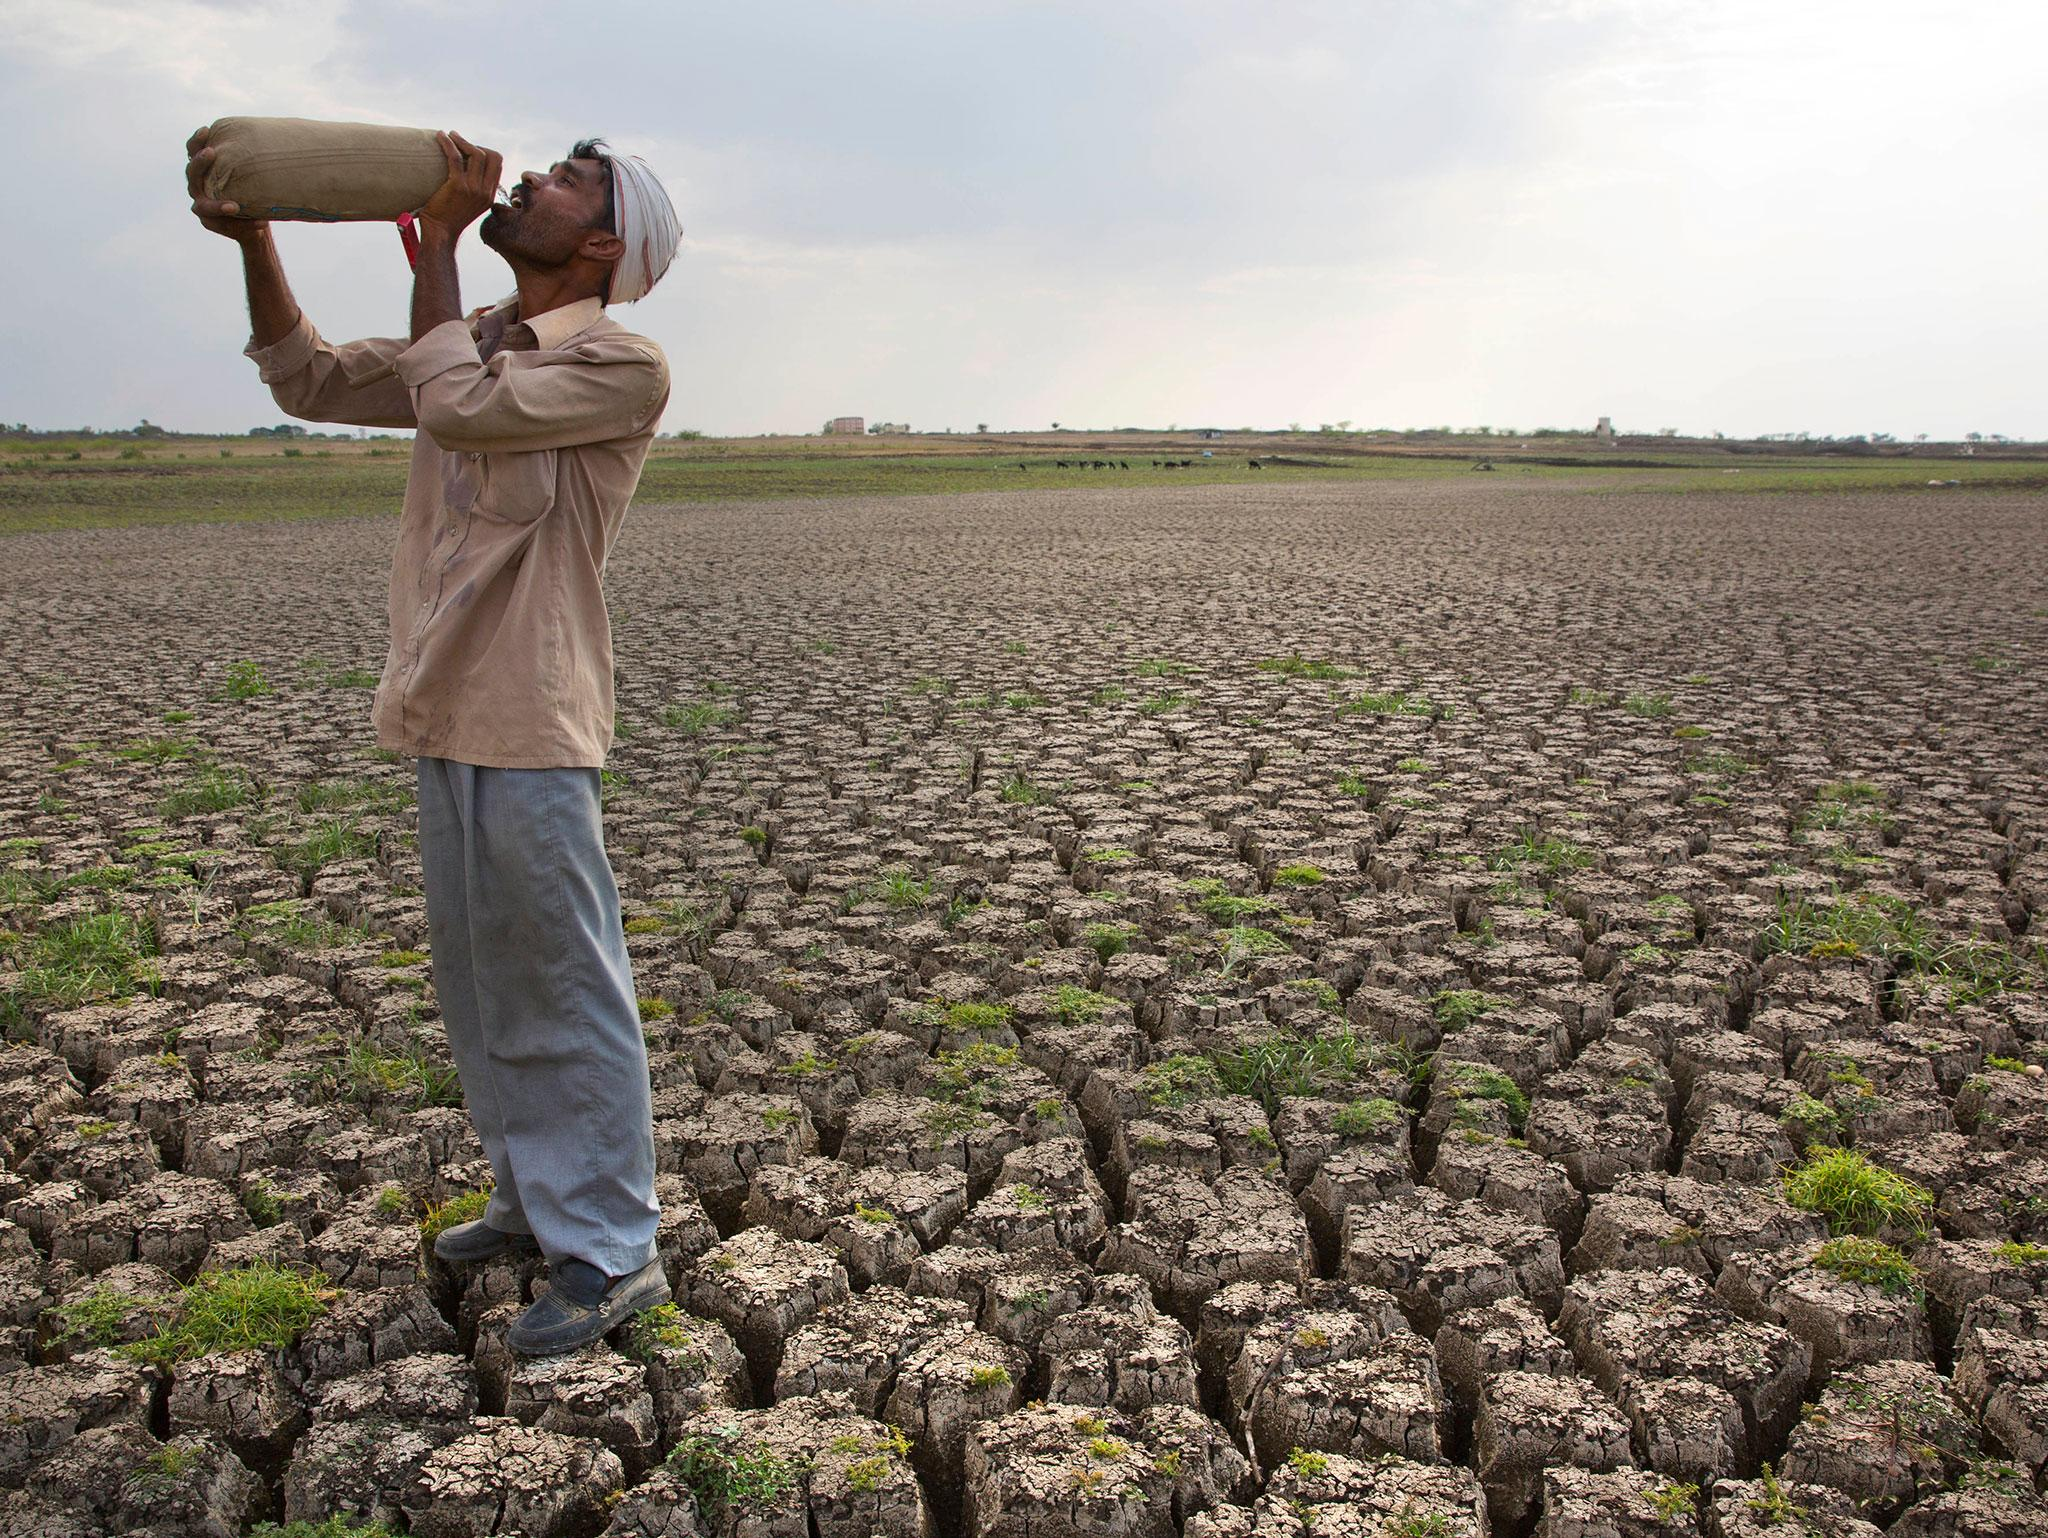 parched-agricultural-land-india.jpg